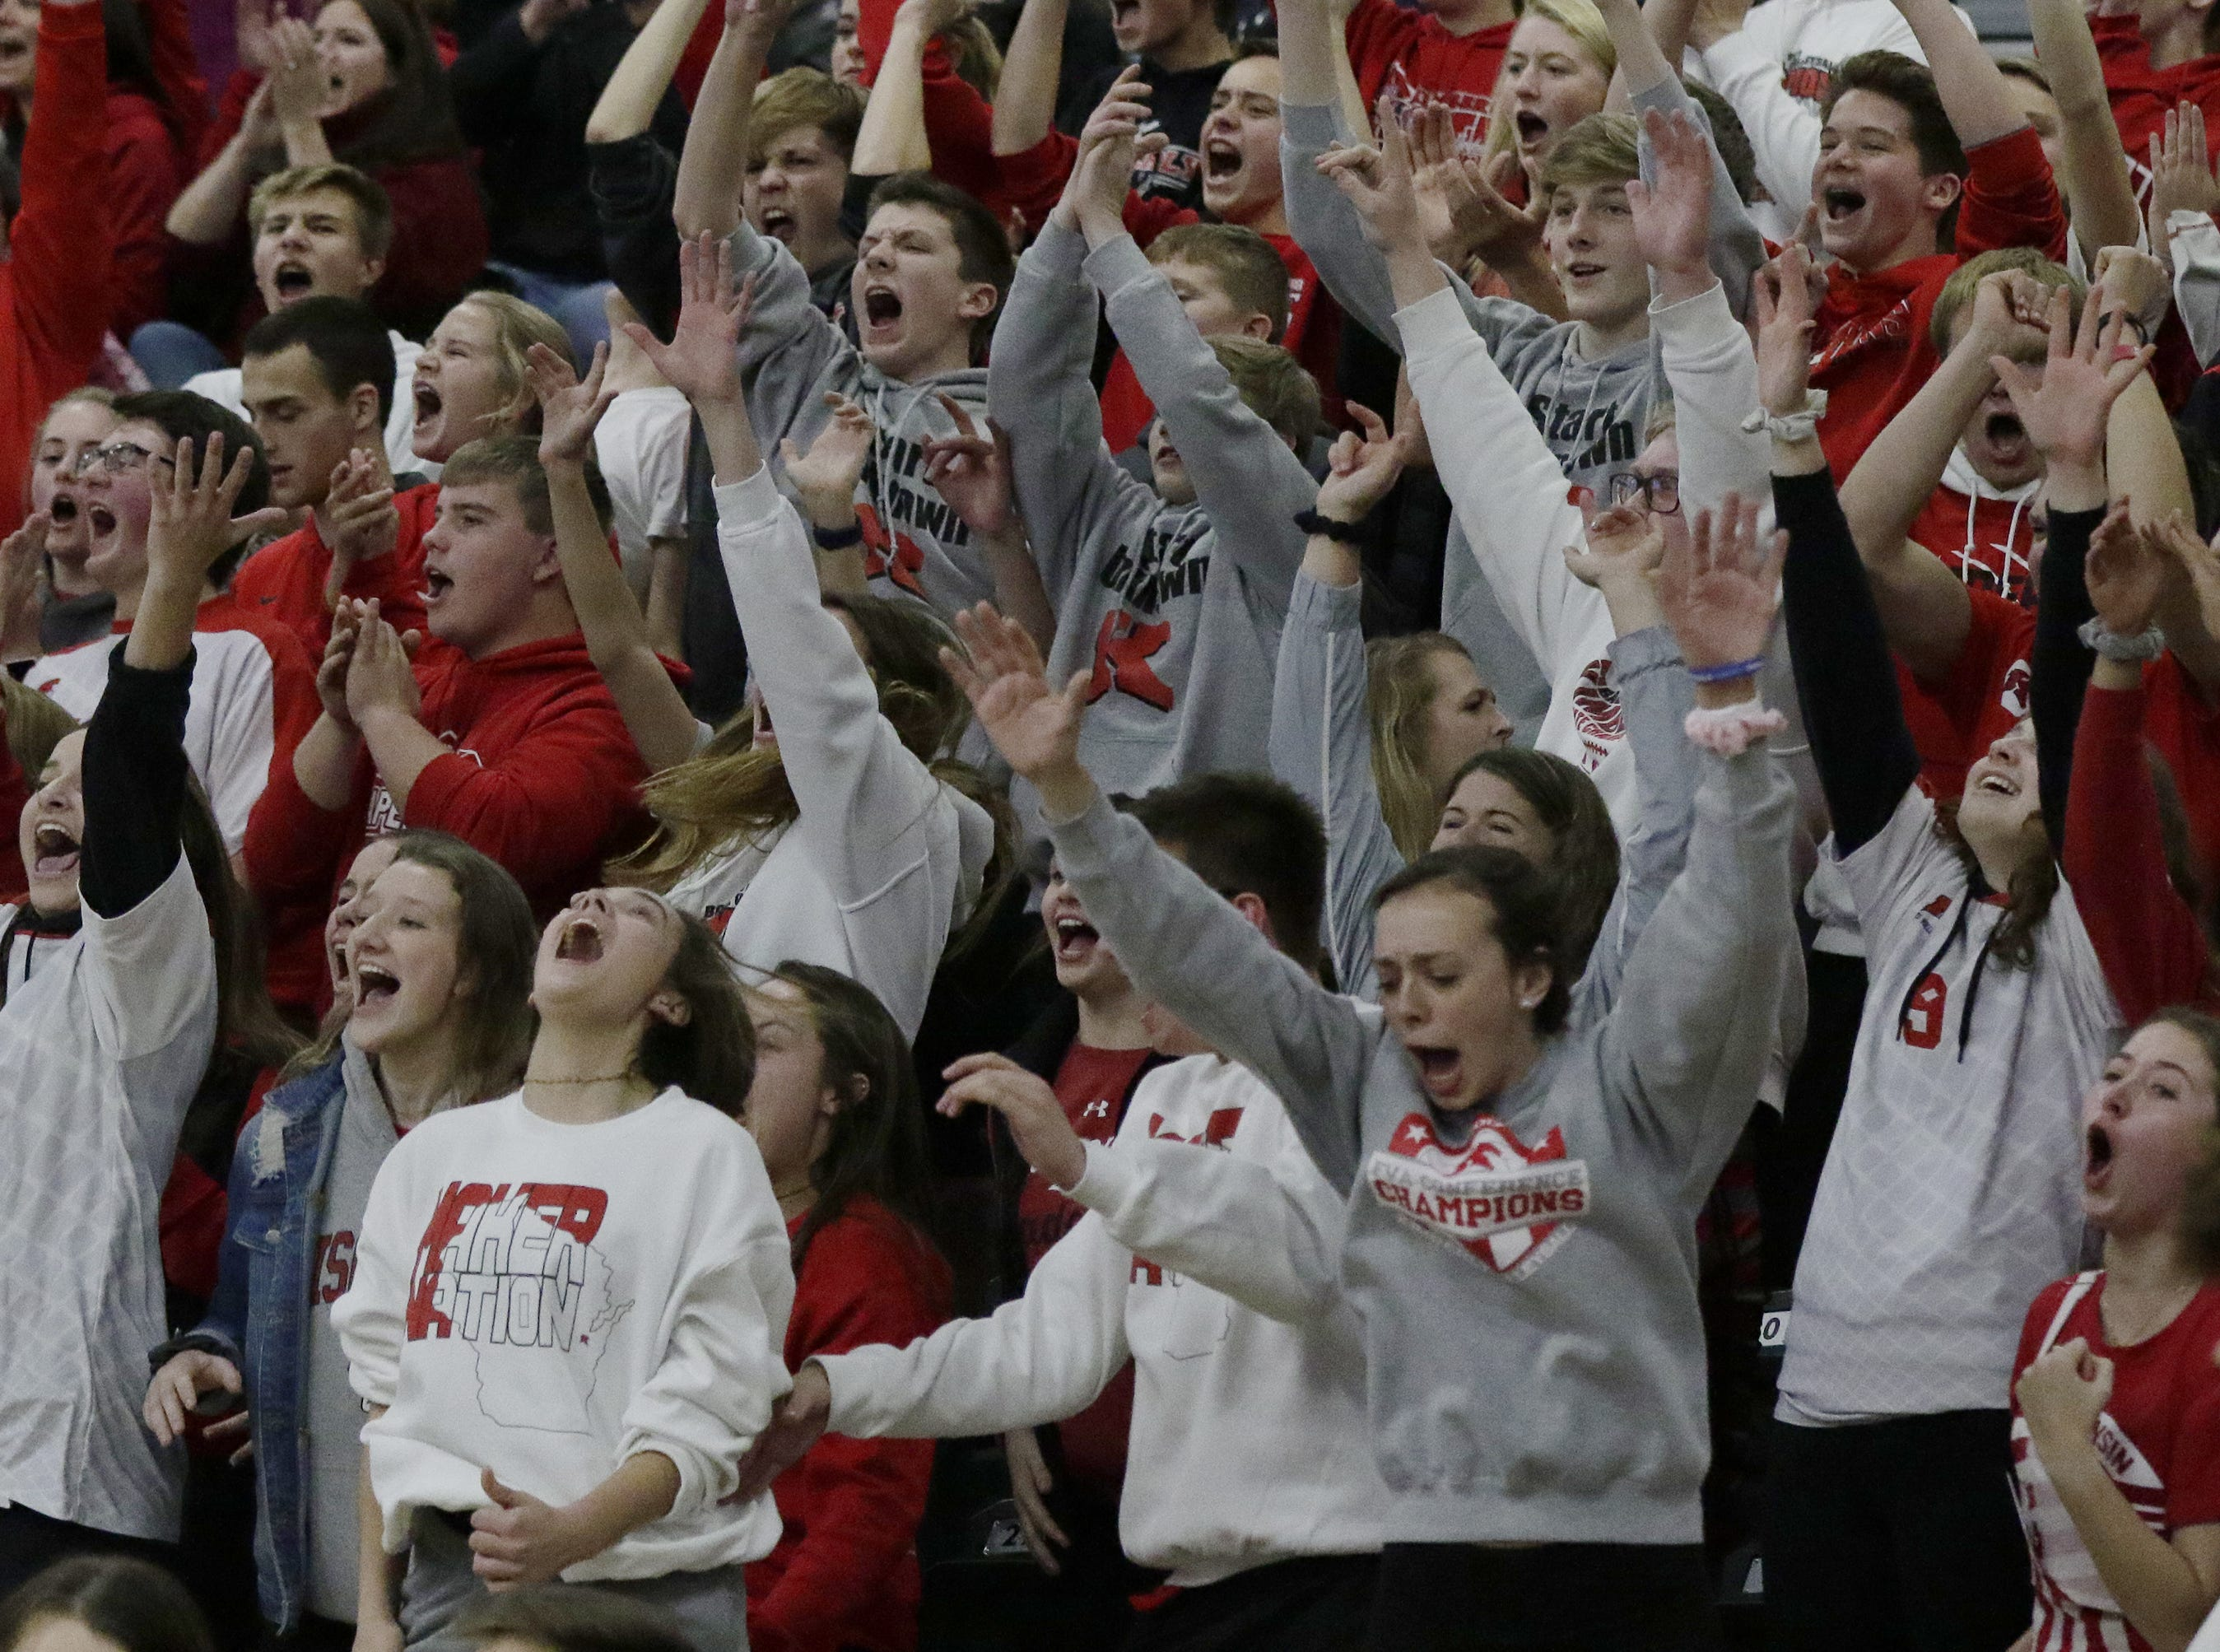 Kimberly's fans celebrate winning their first and only game of the championship.  Kimberly Papermakers played Germantown Warhawks in Division 1 WIAA State Boys Volleyball Championship, Saturday, November 10, 2018 at Wisconsin Lutheran College in Milwaukee, Wis. Joe Sienkiewicz/USA Today NETWORK-Wisconsin